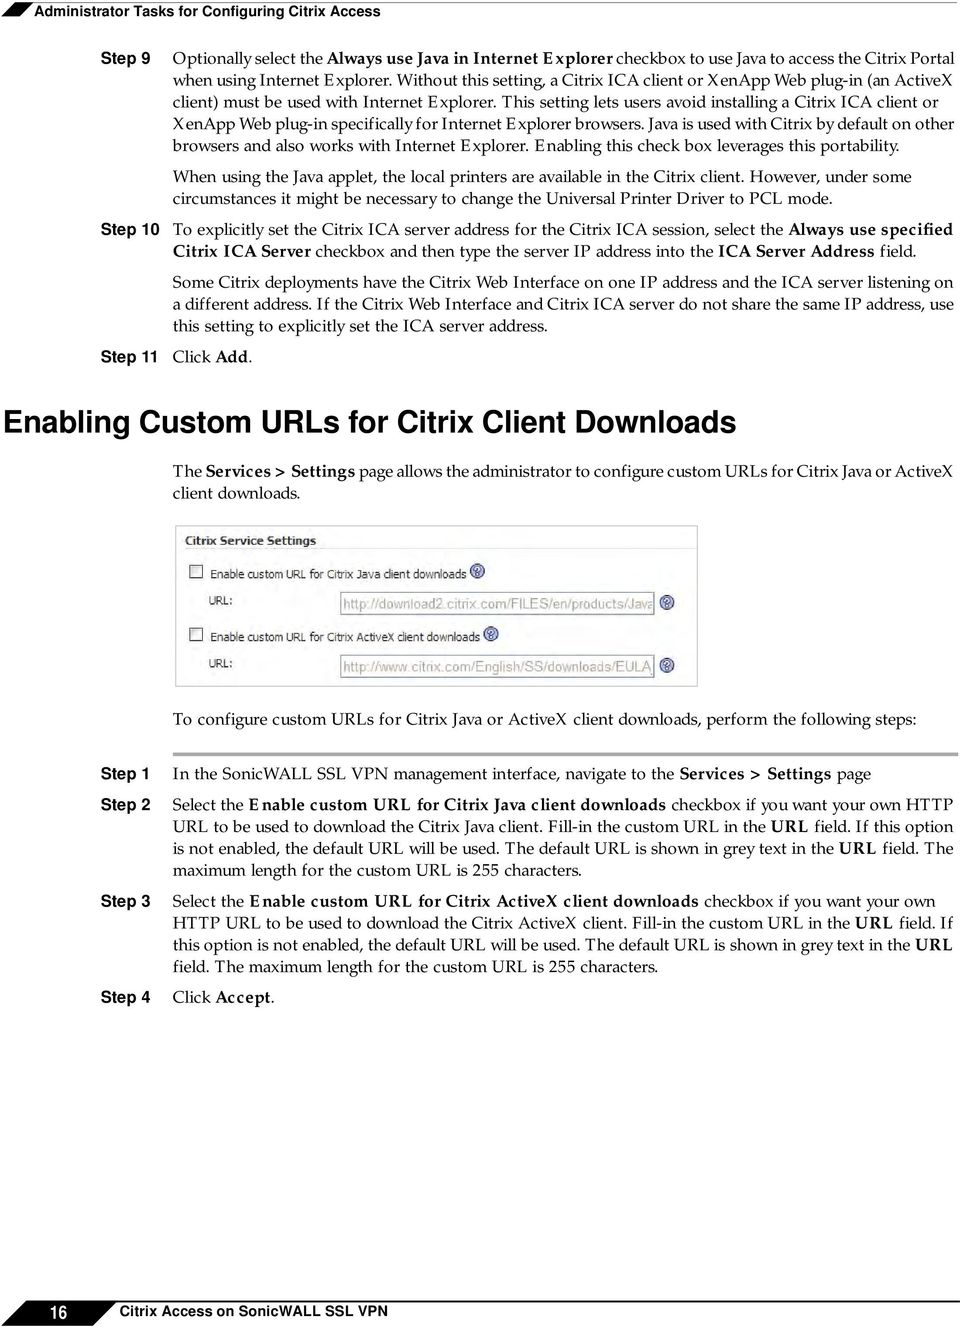 This setting lets users avoid installing a Citrix ICA client or XenApp Web plug-in specifically for Internet Explorer browsers.